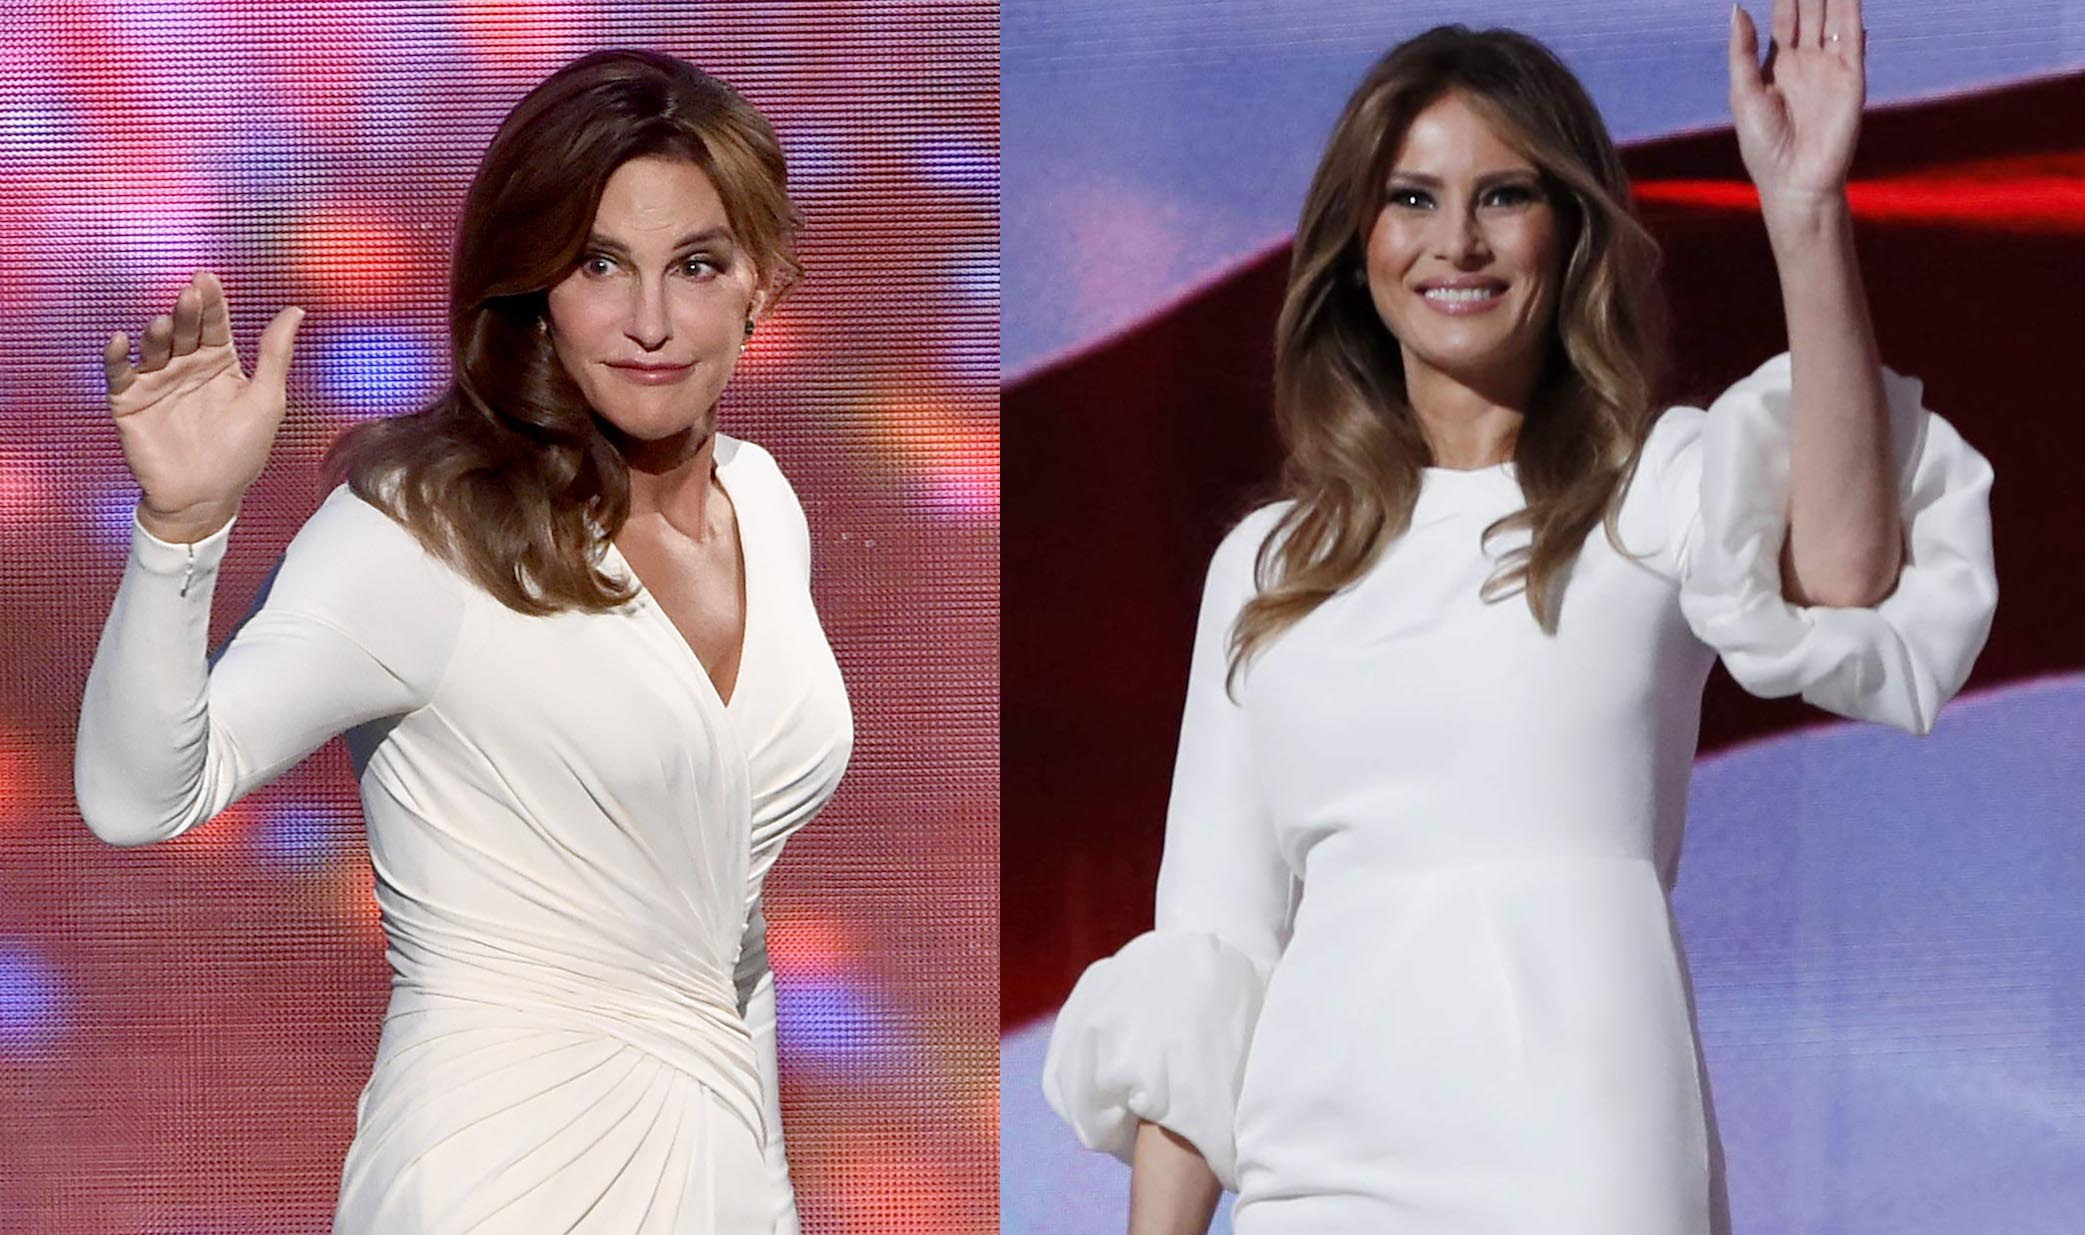 Caitlyn Jenner tweets that B***h don't look like me. She's a theif and ...